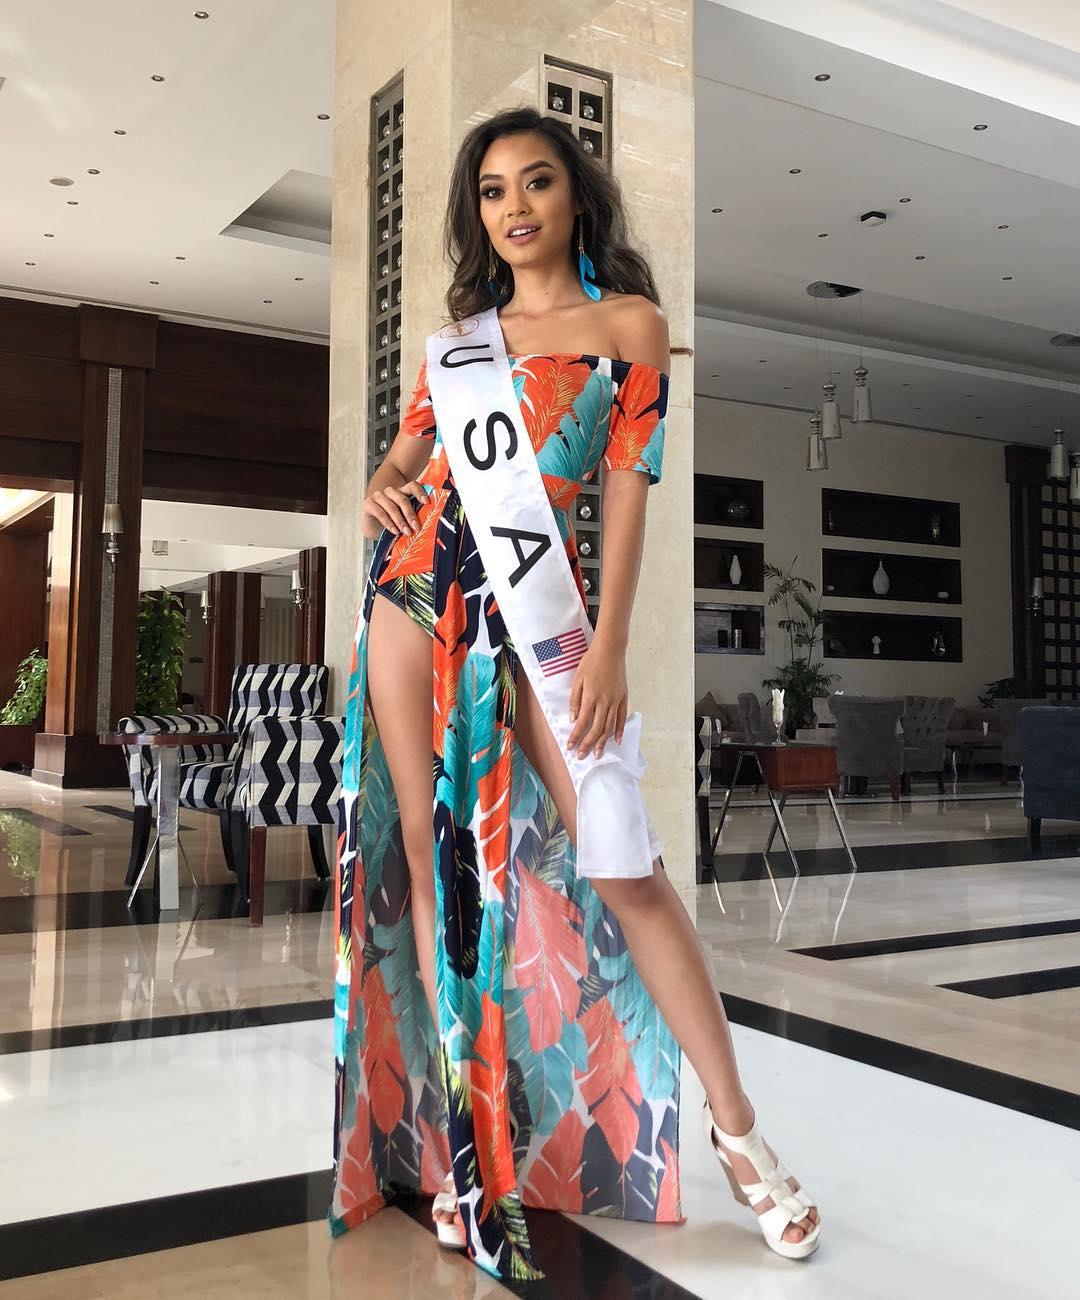 raquel basco, miss international hawaii 2019/miss intercontinental usa 2017. - Página 4 26151710